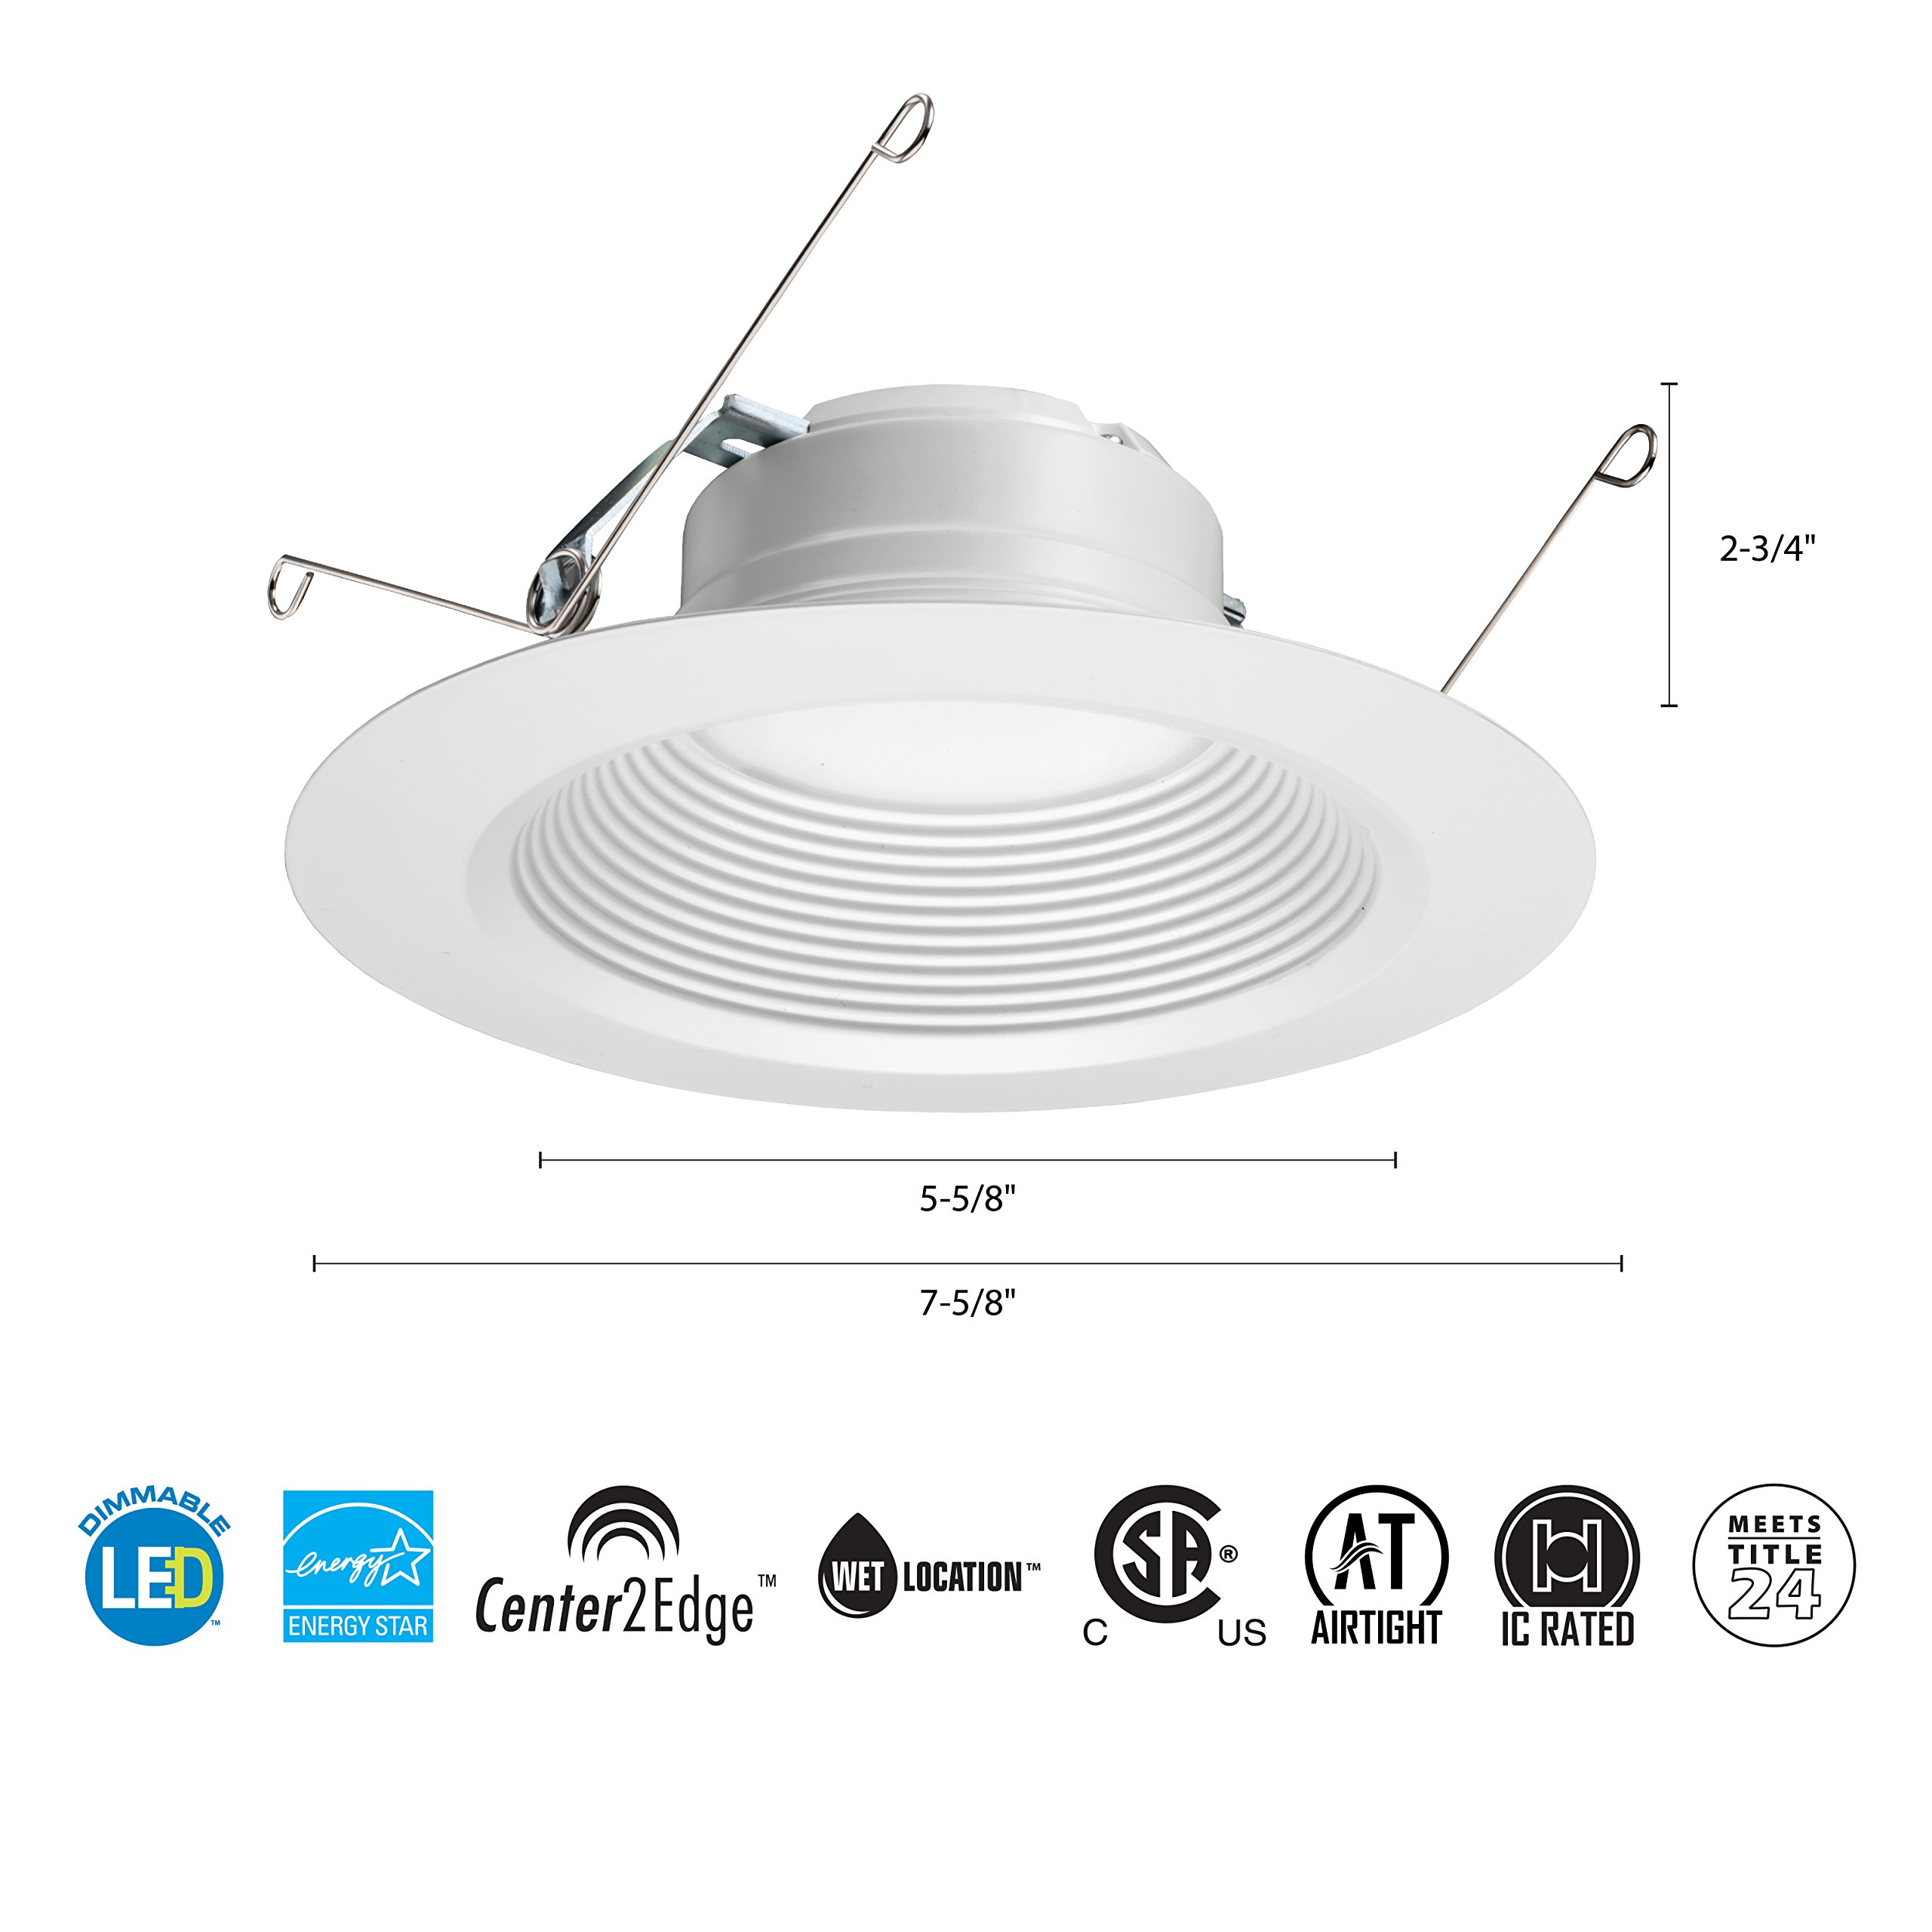 Lithonia Lighting 5/6 Inch White Retrofit LED Recessed Downlight, 12W Dimmable with 5000K Day White, 825 Lumens by Lithonia Lighting (Image #4)